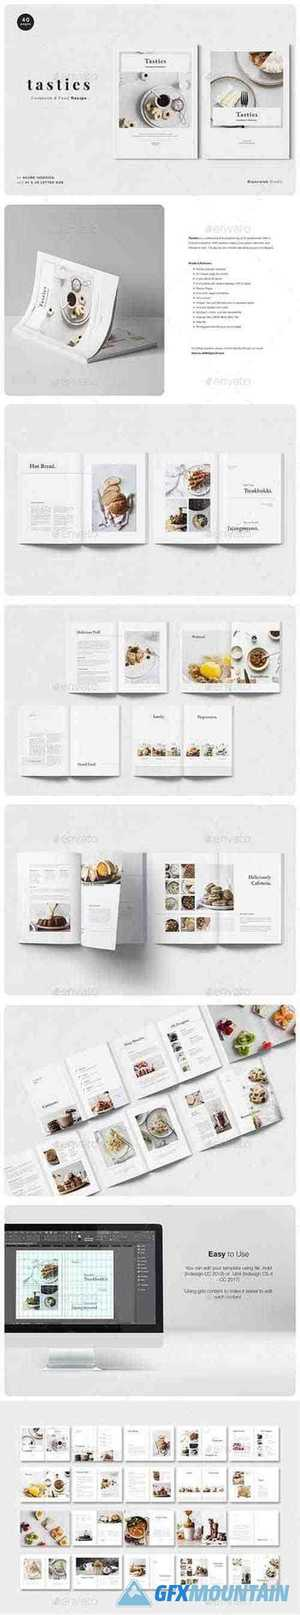 Tasties Cookbook & Food Recipe 27930675